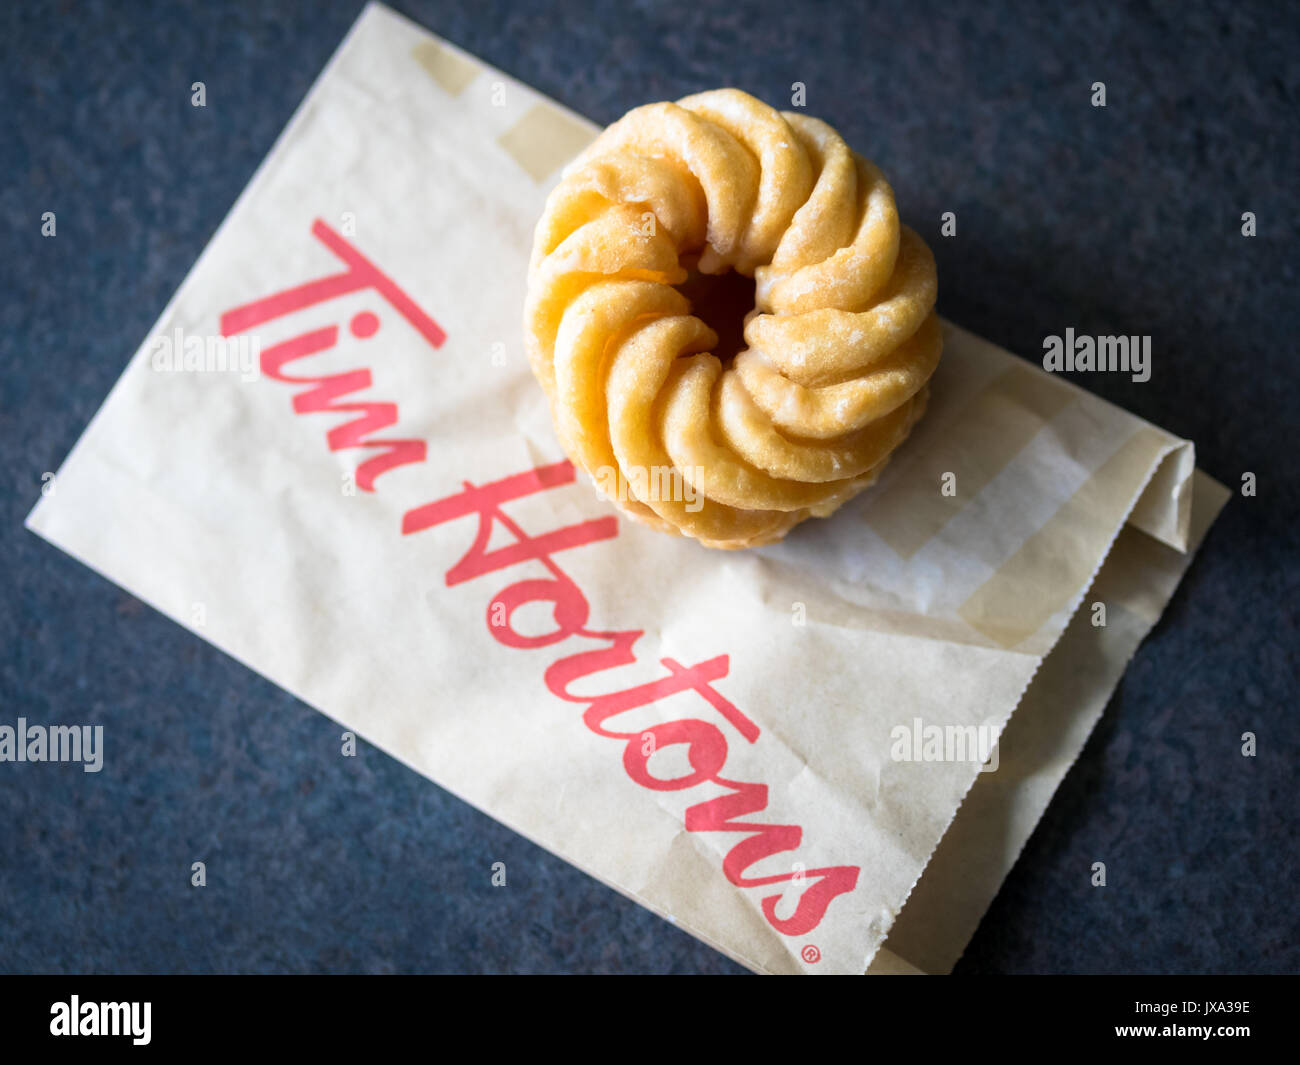 A honey cruller donut from Tim Hortons, a popular Canadian fast food restaurant and donut shop. - Stock Image